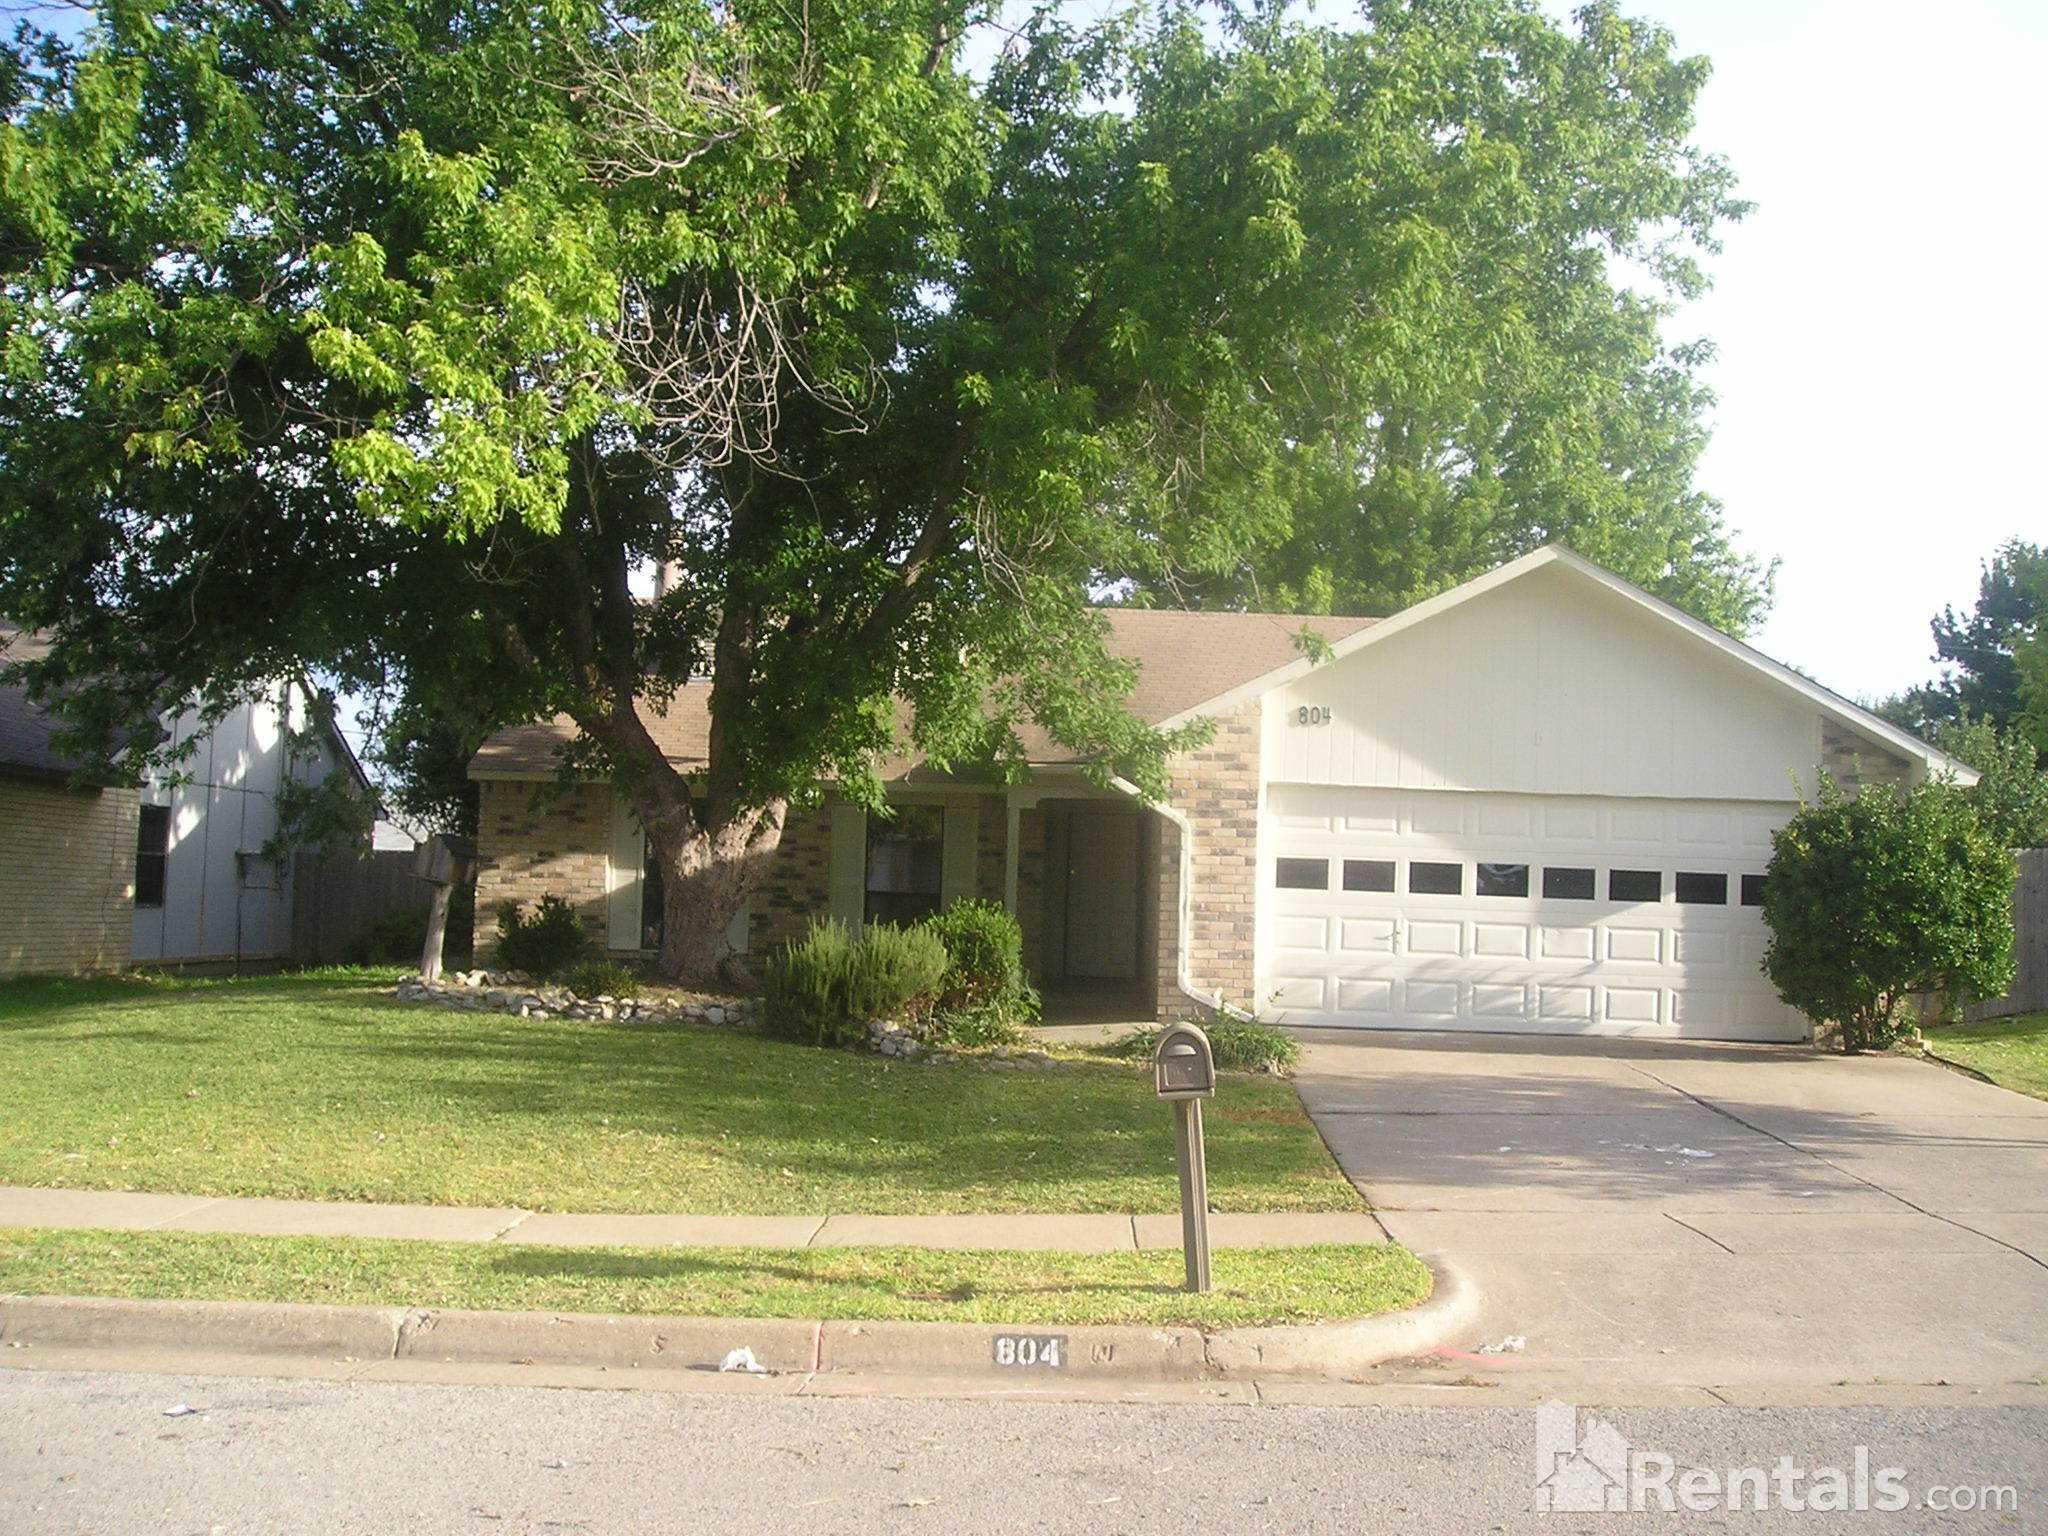 love residents grand at apartments townhomes bedroom living arioso in tx prairie arlington for come our near why see rent